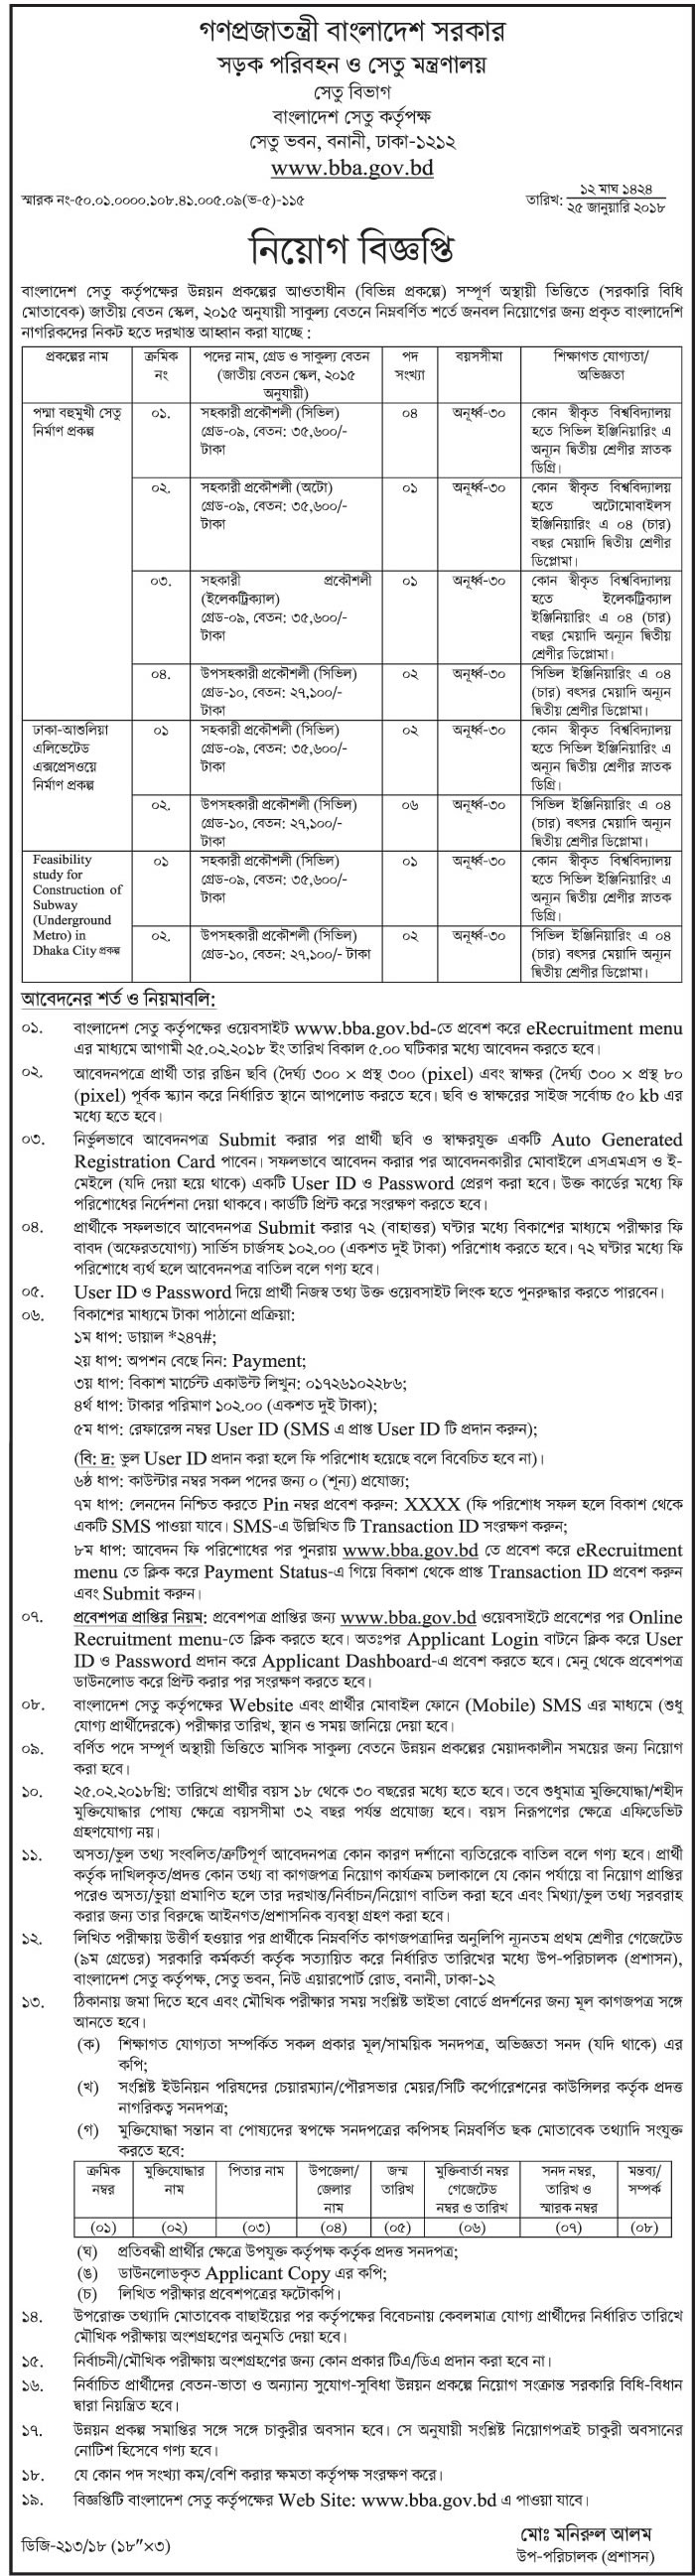 Bangladesh Bridge Authority Job Circular 2018 - www.bba.gov.bd